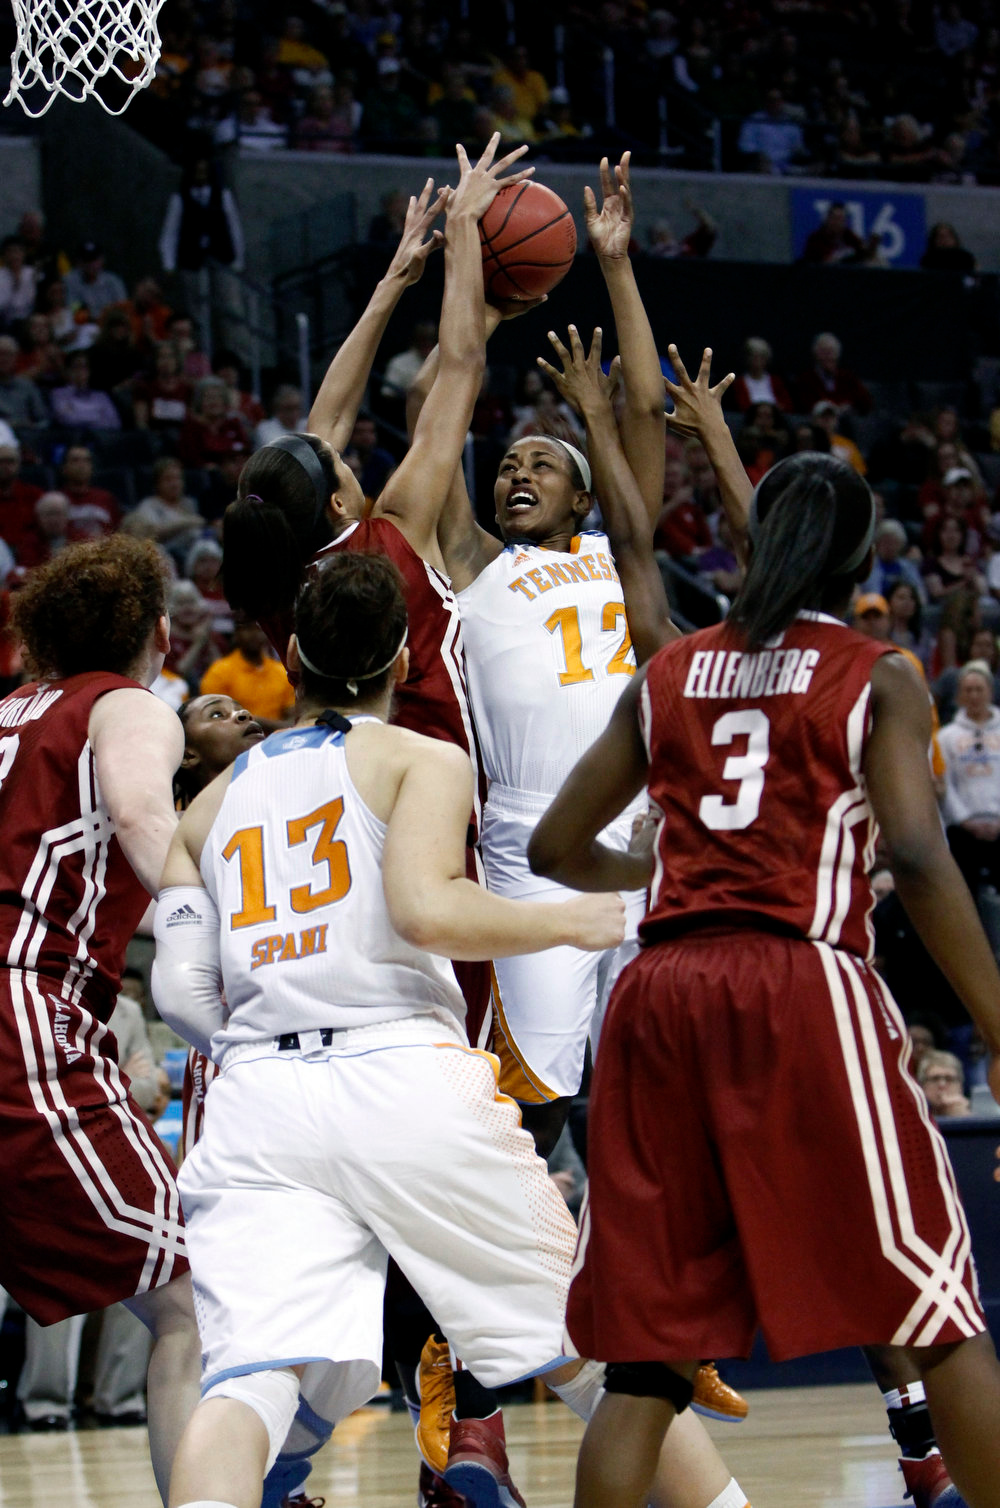 . Tennessee\'s Bashaara Graves (12) shoots against Oklahoma in the second half of a regional semifinal game in the women\'s NCAA college basketball tournament in Oklahoma City, Sunday, March 31, 2013.  Tennessee won 74-59.  (AP Photo/Alonzo Adams)